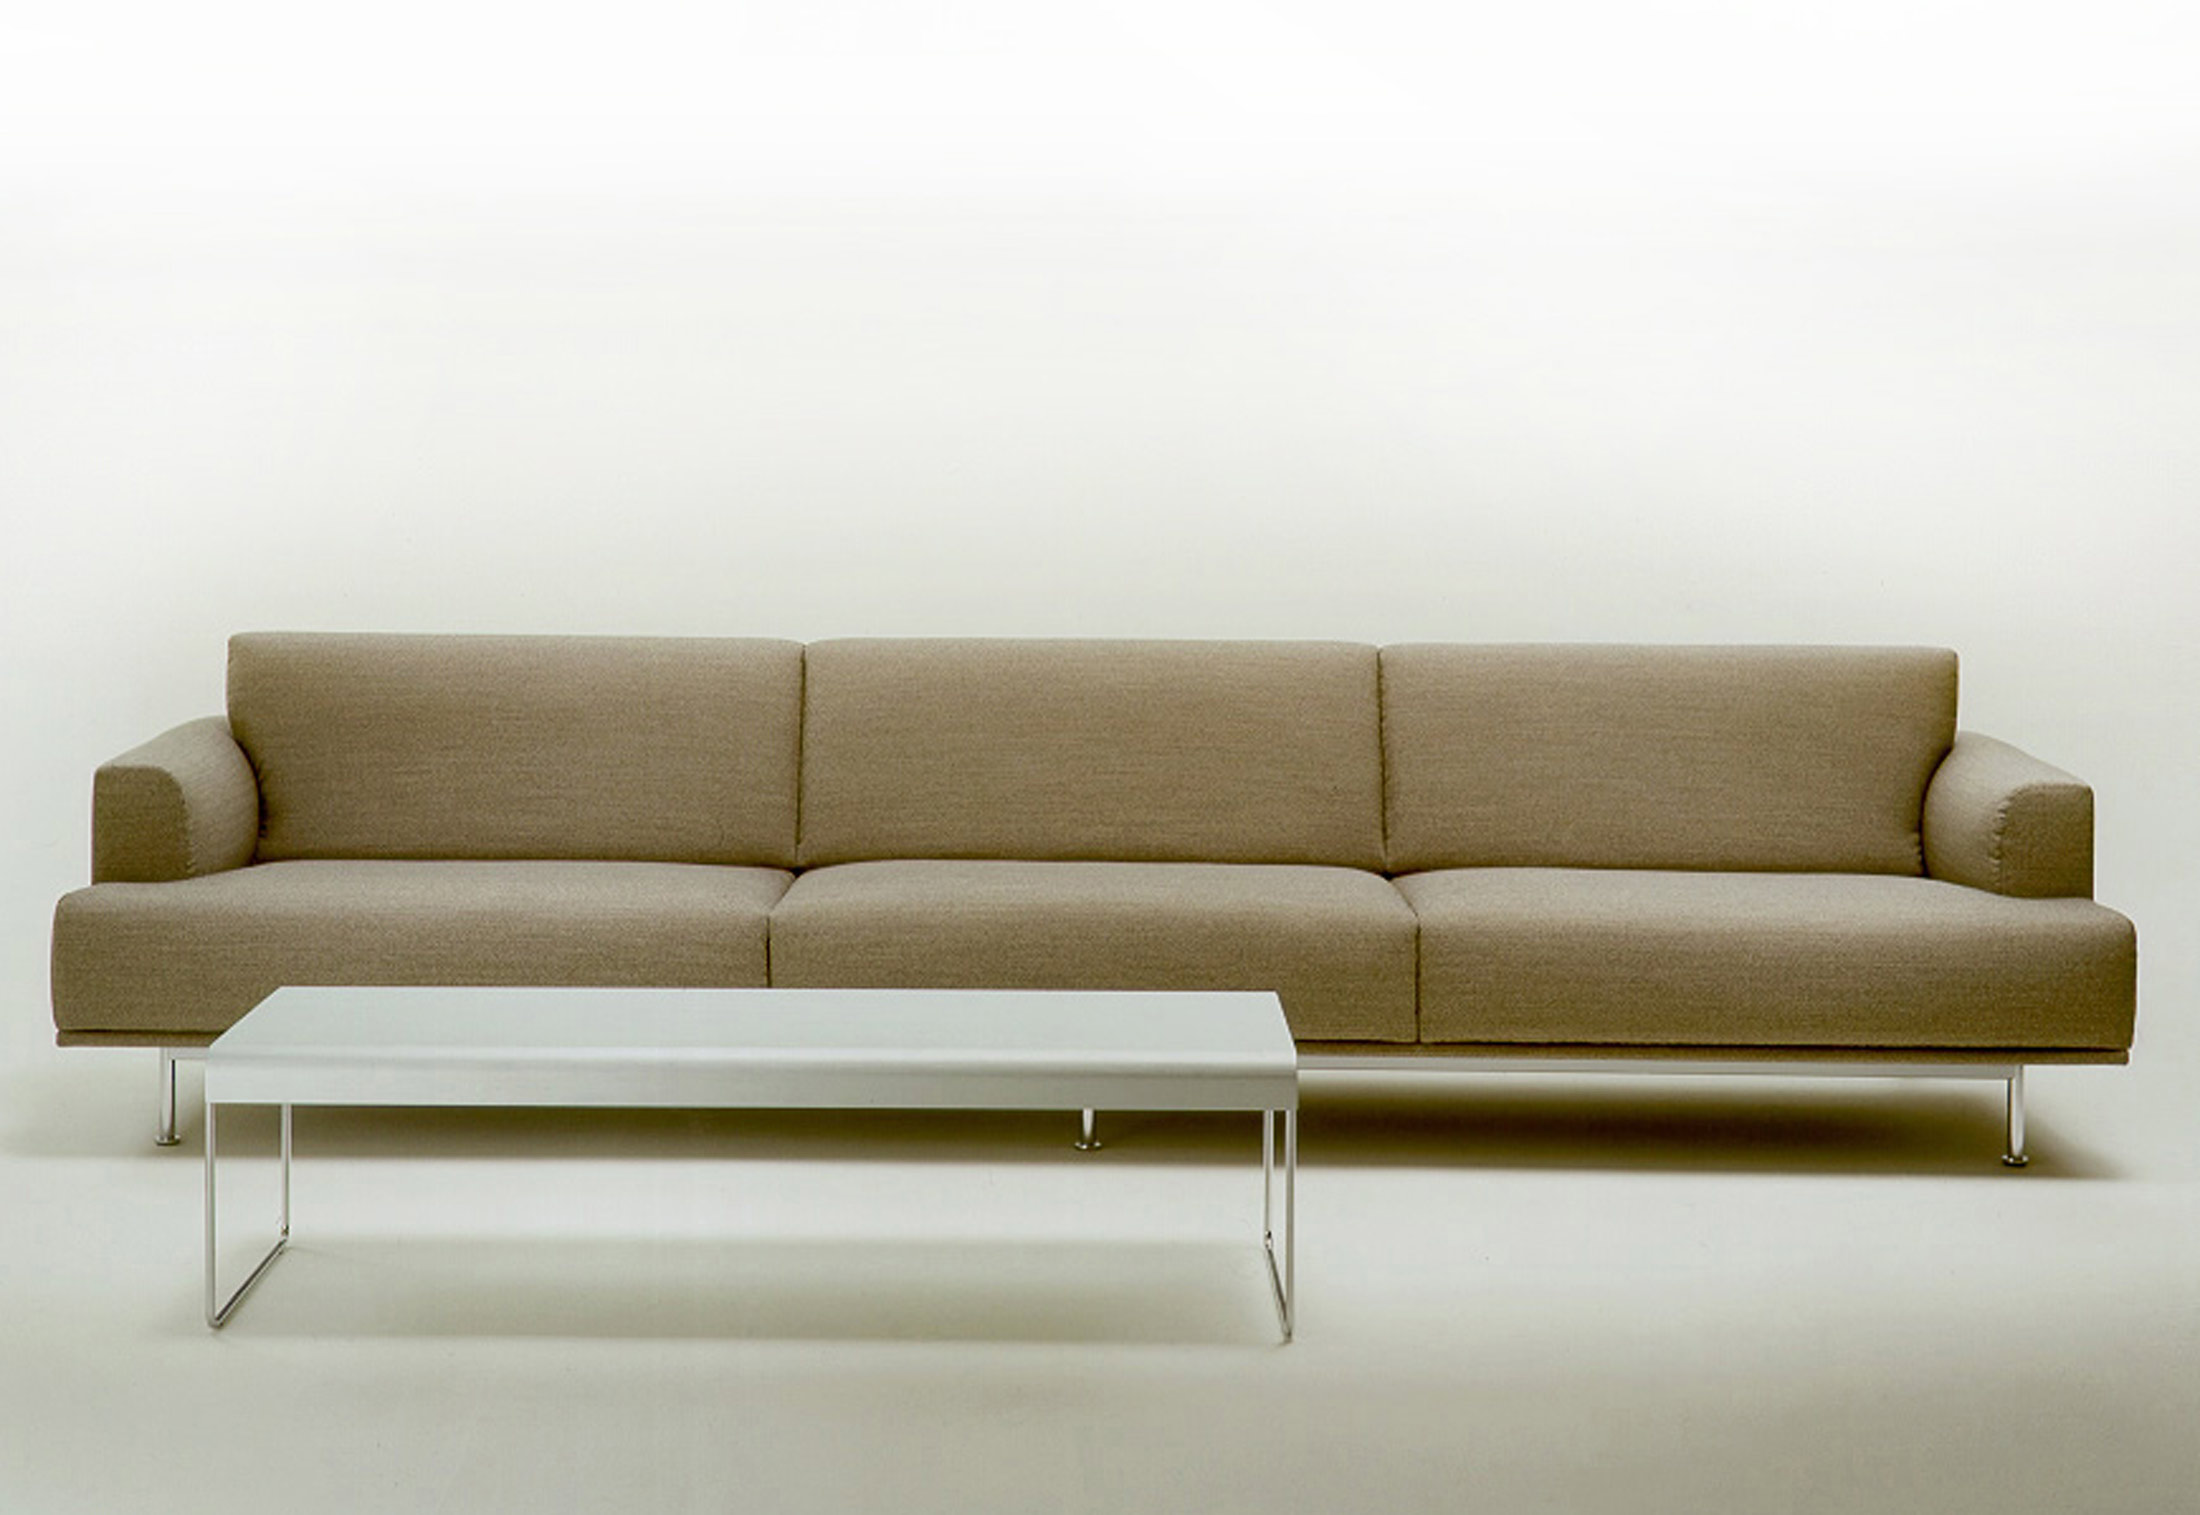 Nest 3 Seater Sofa By Cassina Stylepark